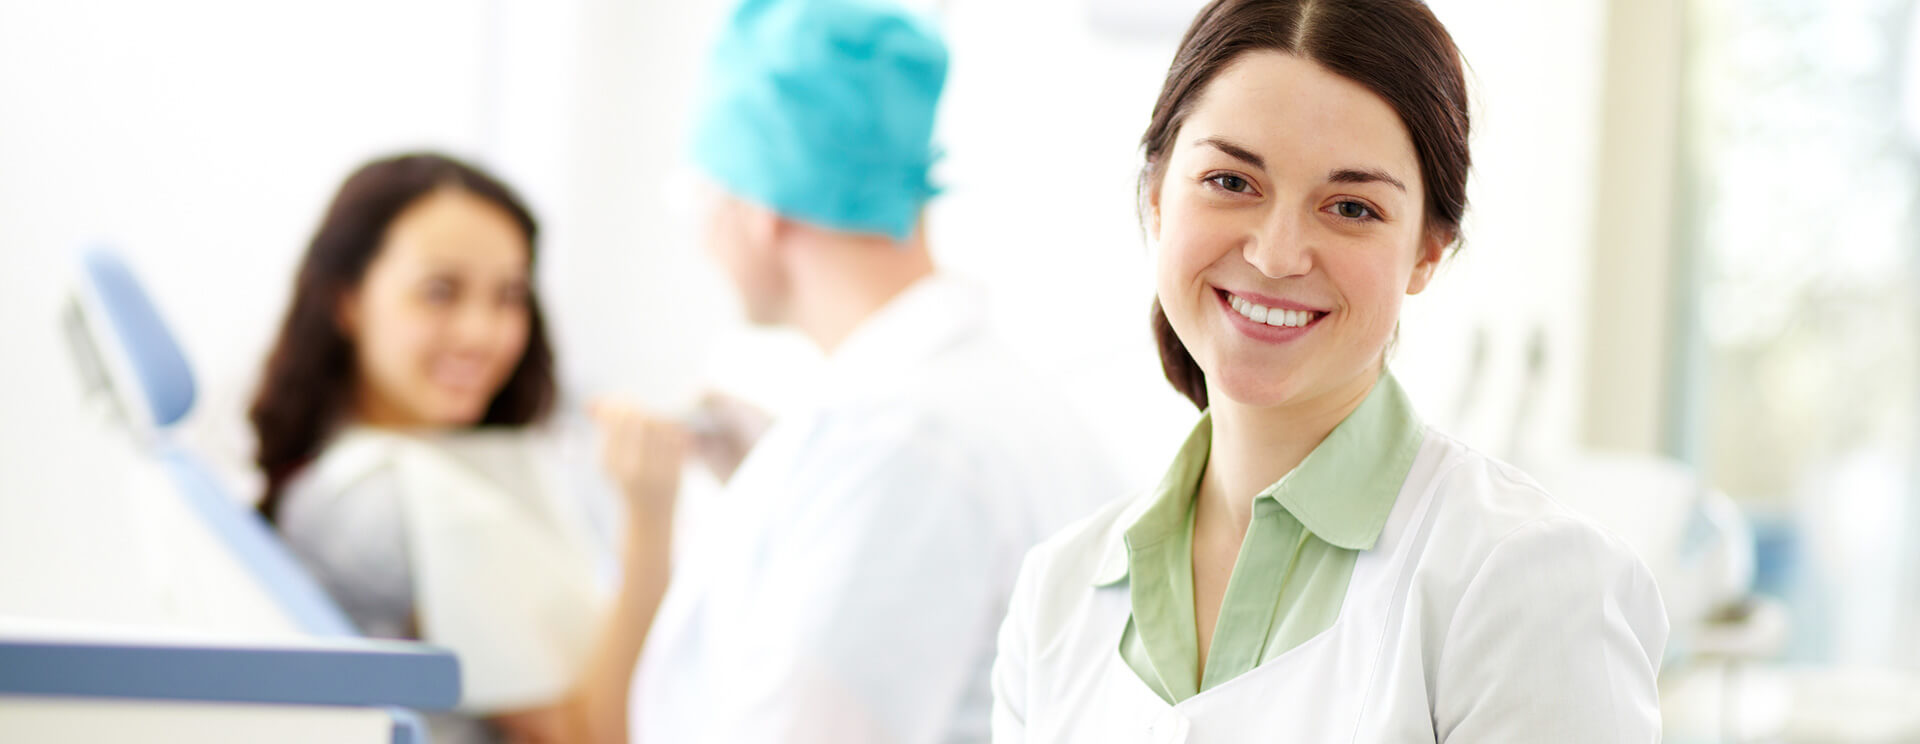 Happy dental assistant smiling at the camera